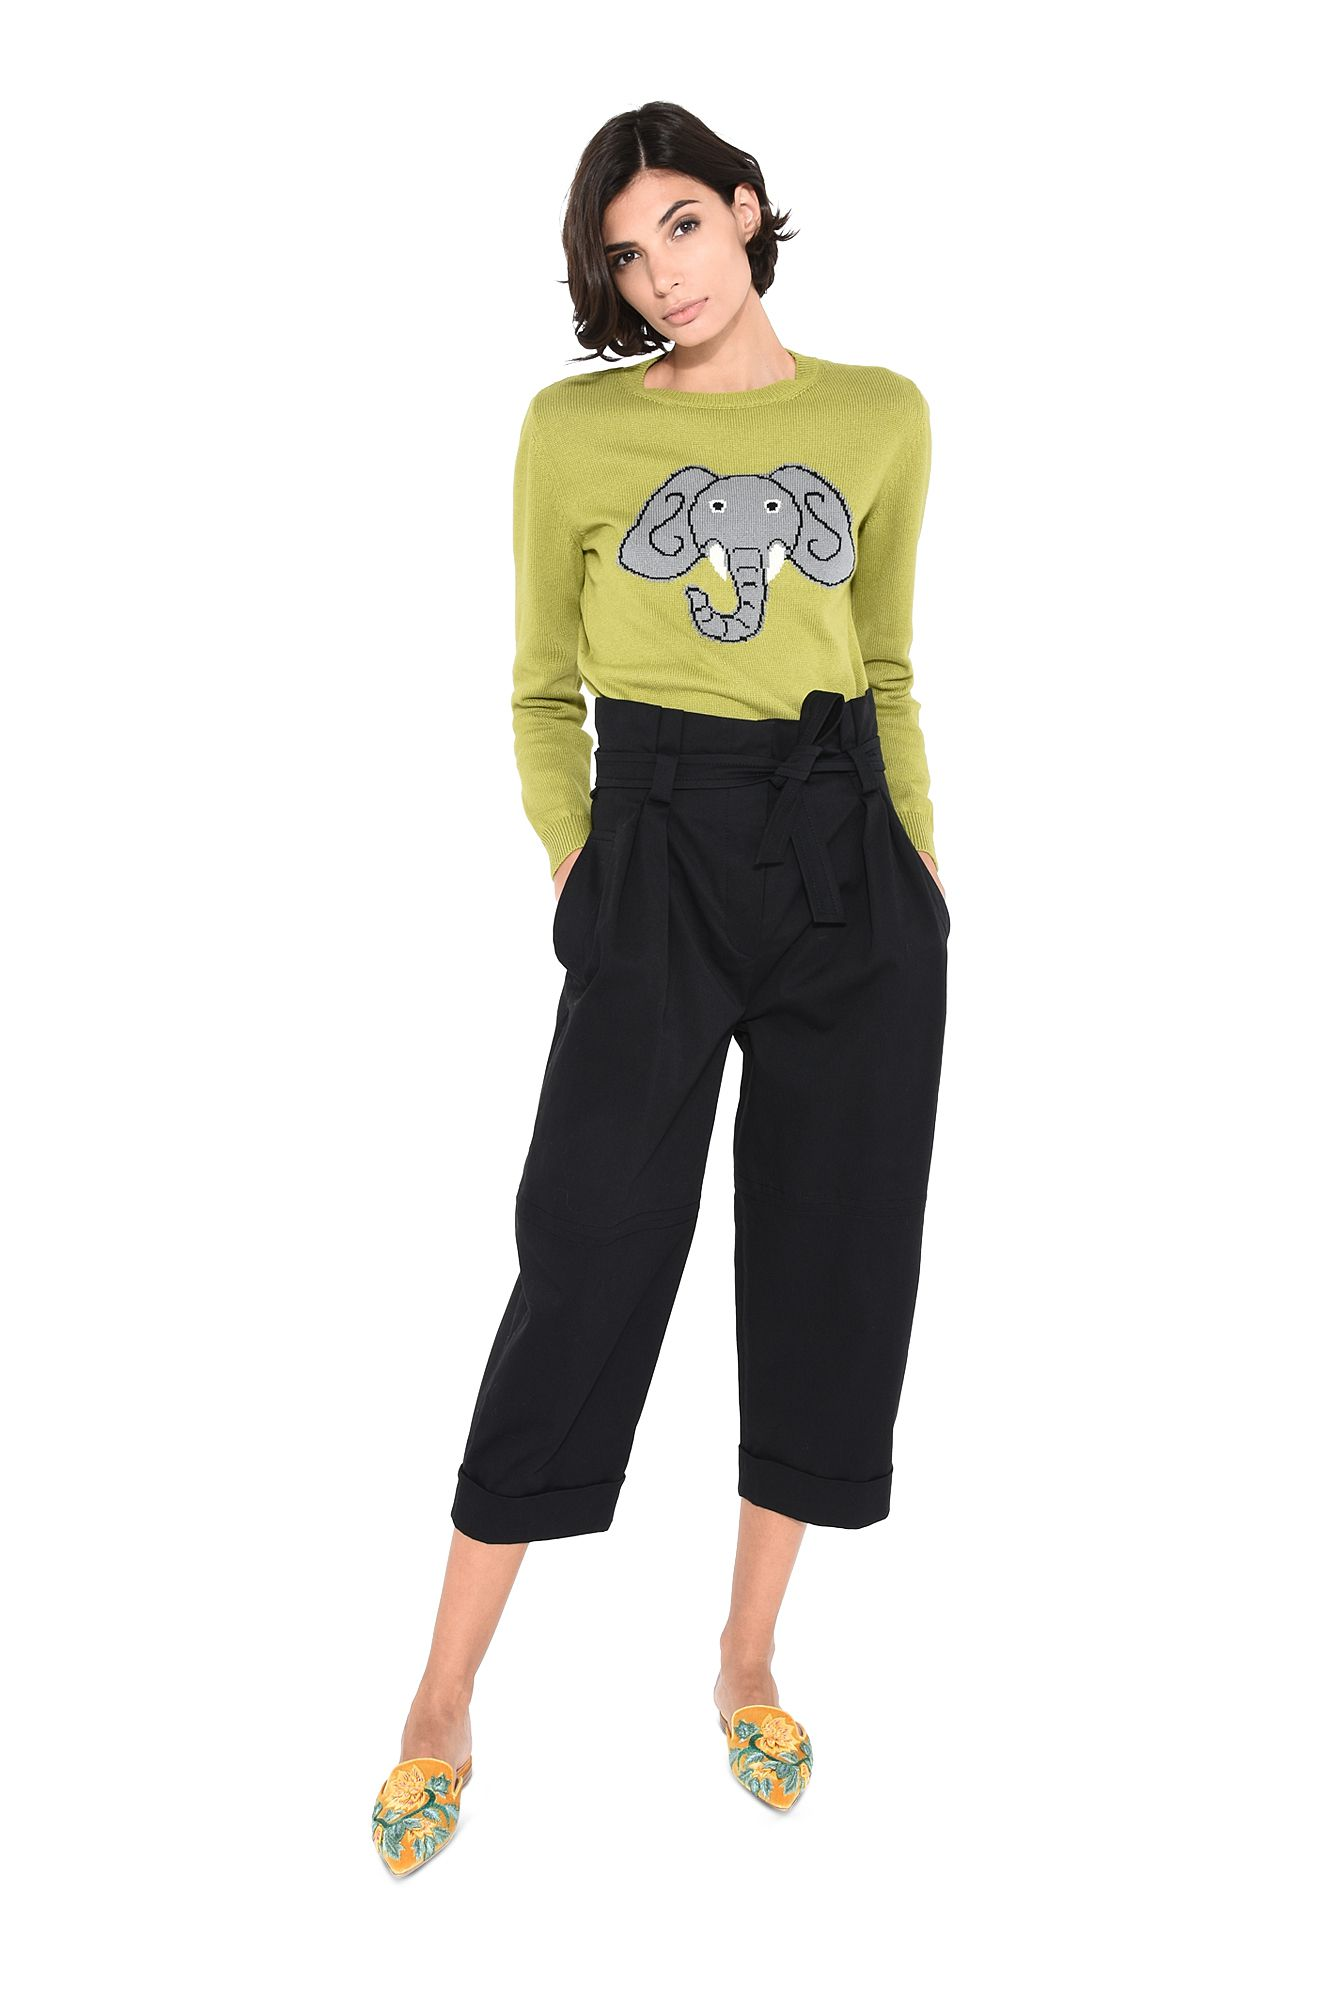 Green sweater with elephant